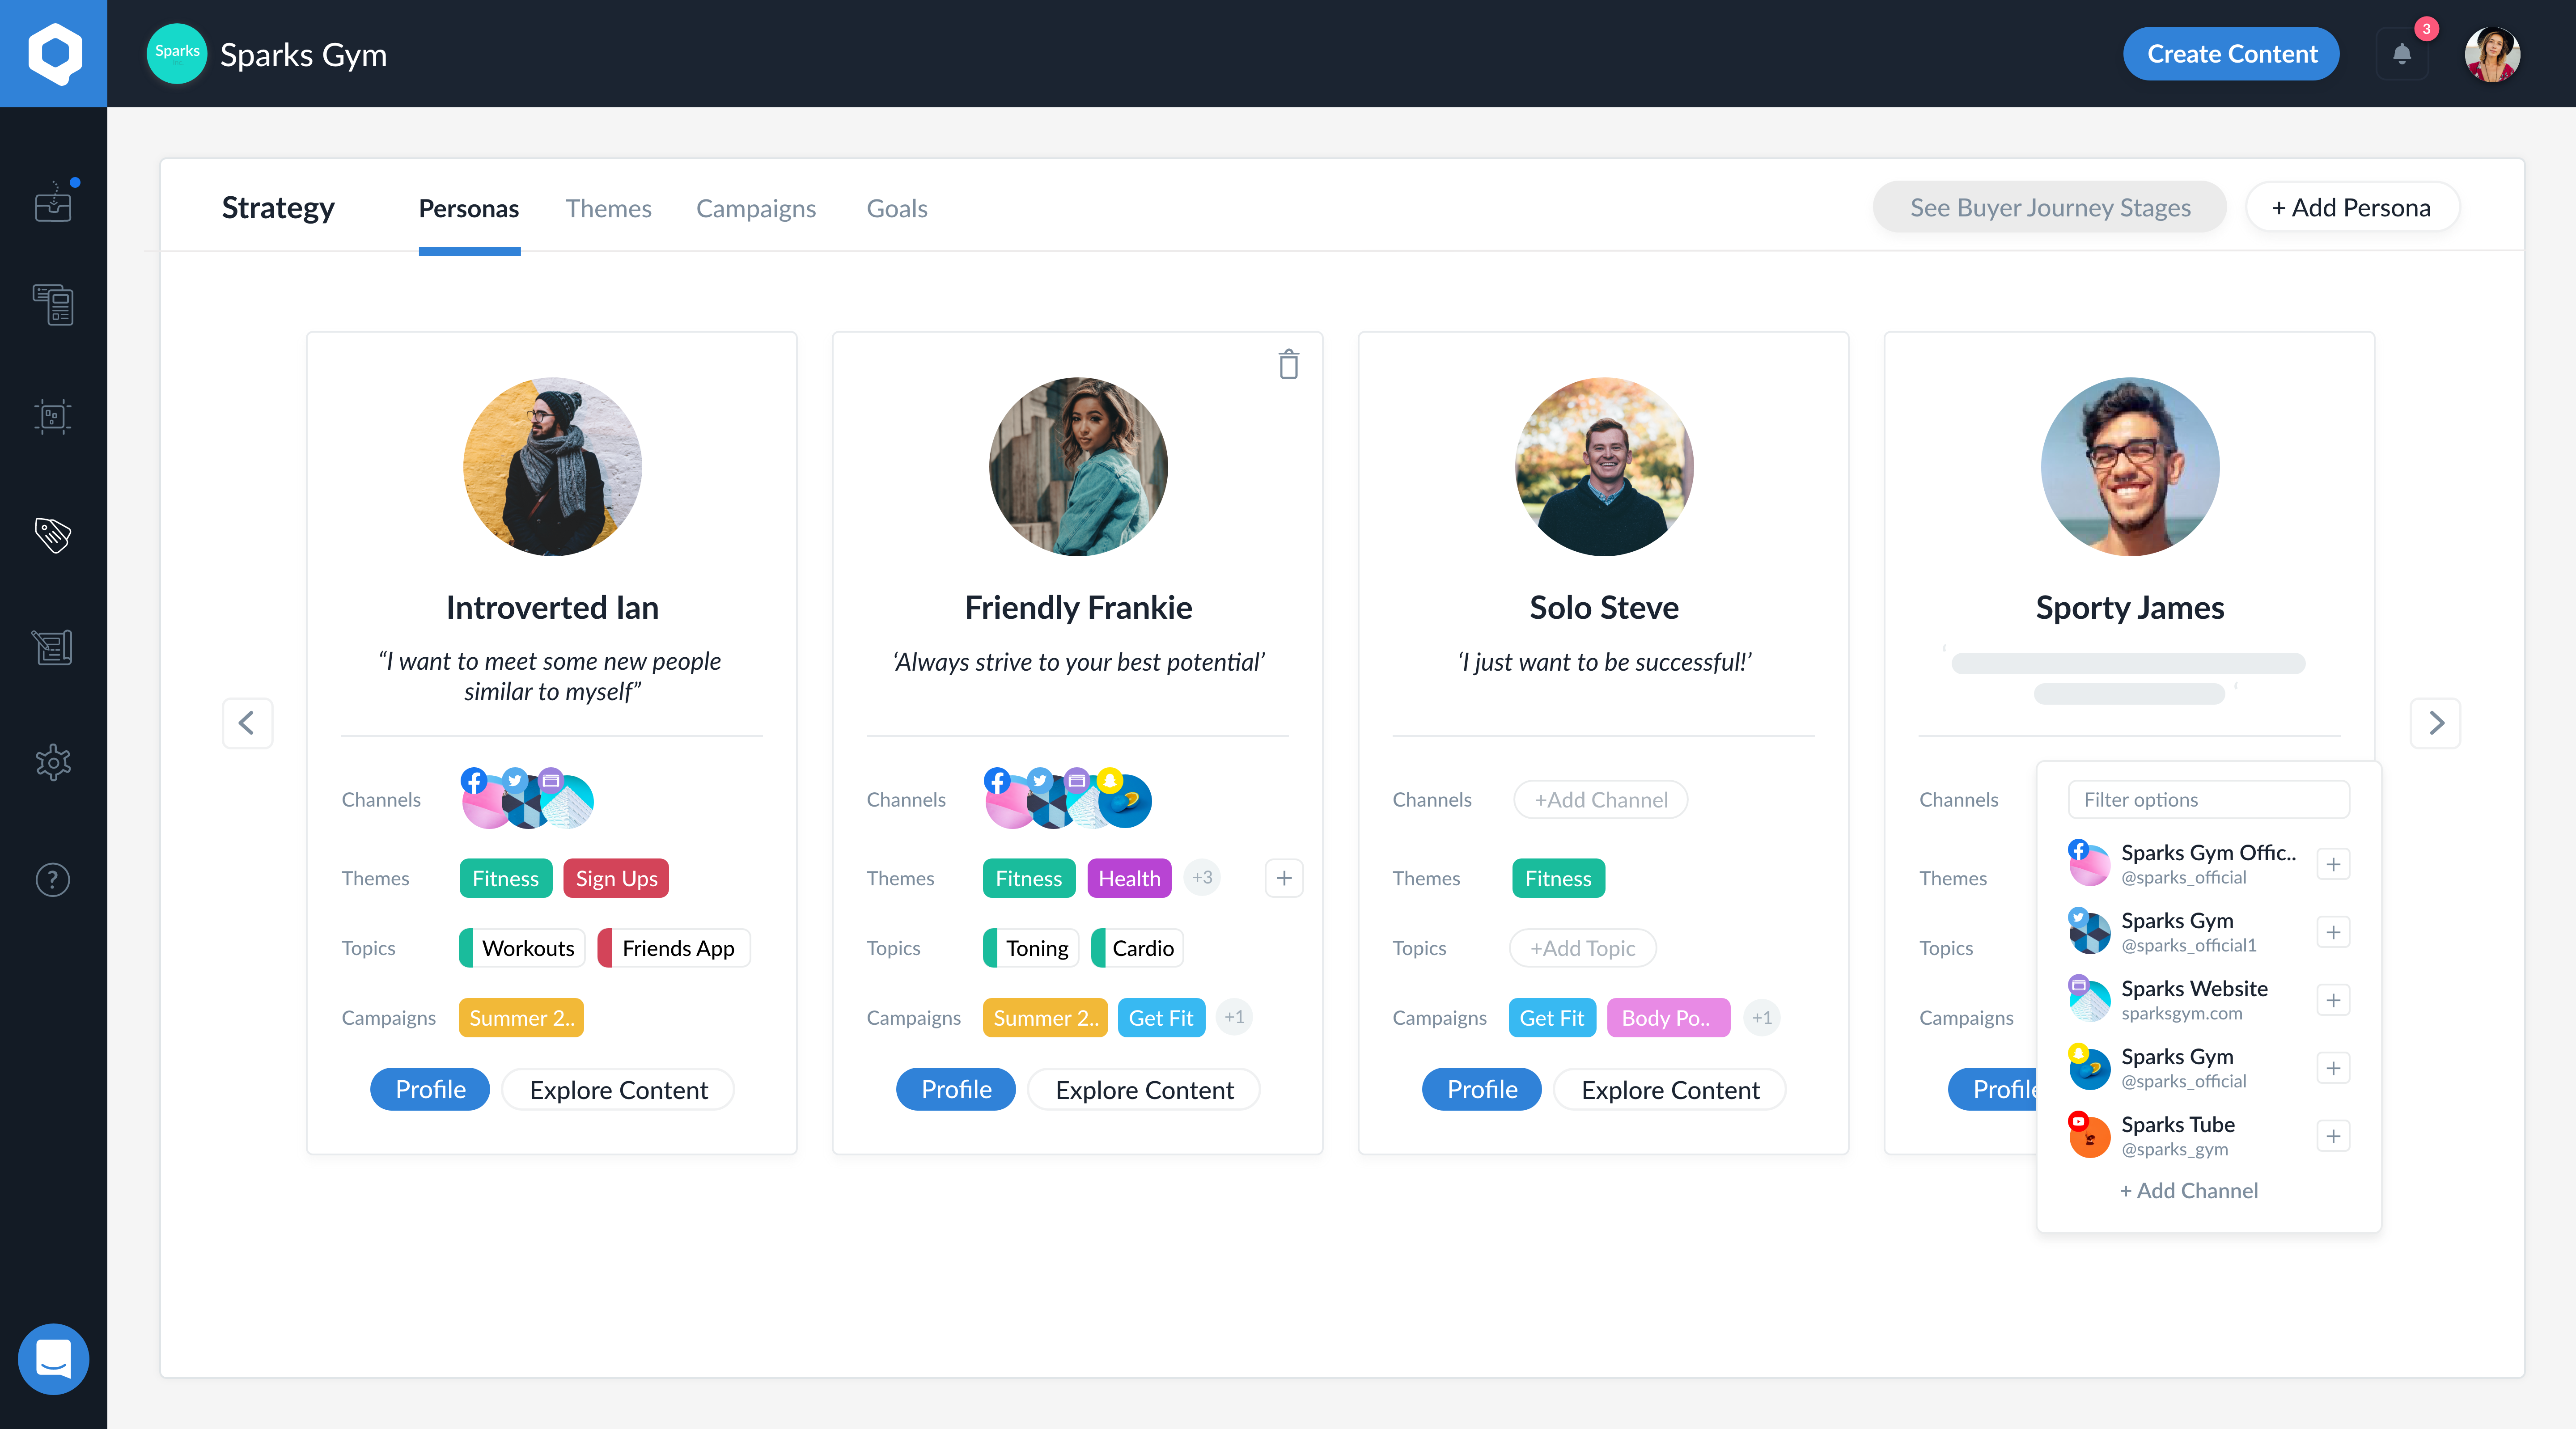 Built in Persona Builder allows you to quickly and easily tag buyer personas, set the buyer journey stage, add themes, topics, products, campaigns and goals